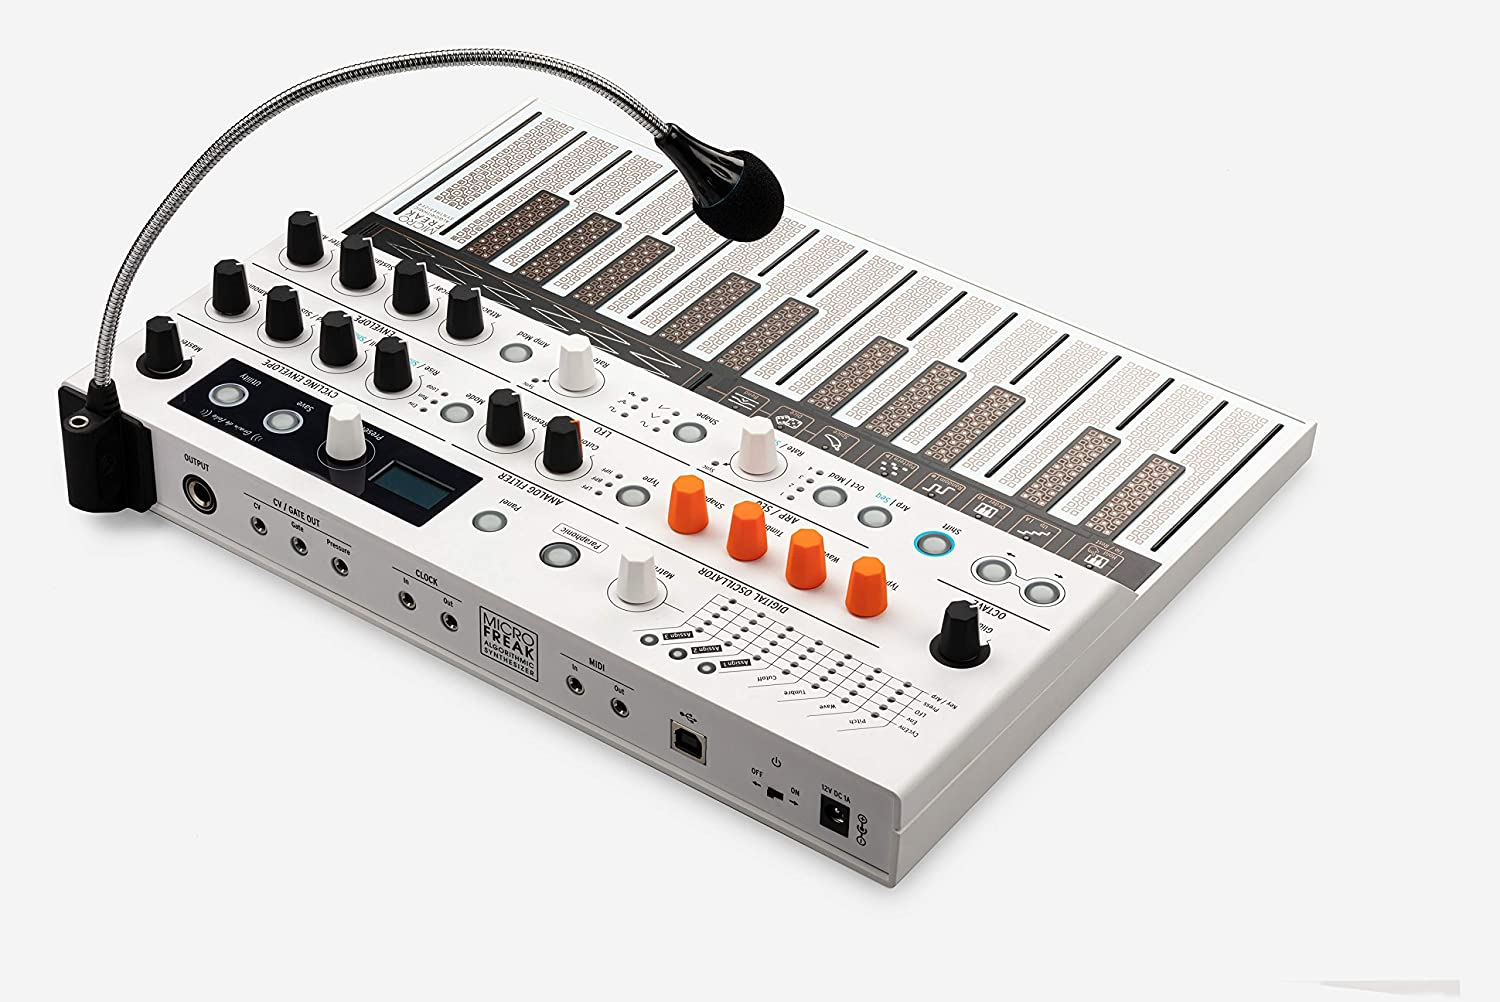 Arturia MicroFreak Vocoder Edition Hybrid Synthesizer 25-Key Paraphonic Hybrid Hardware Synth and Vocoder with Poly-aftertouch Flat Keyboard and Gravity Phone Holder Bundle